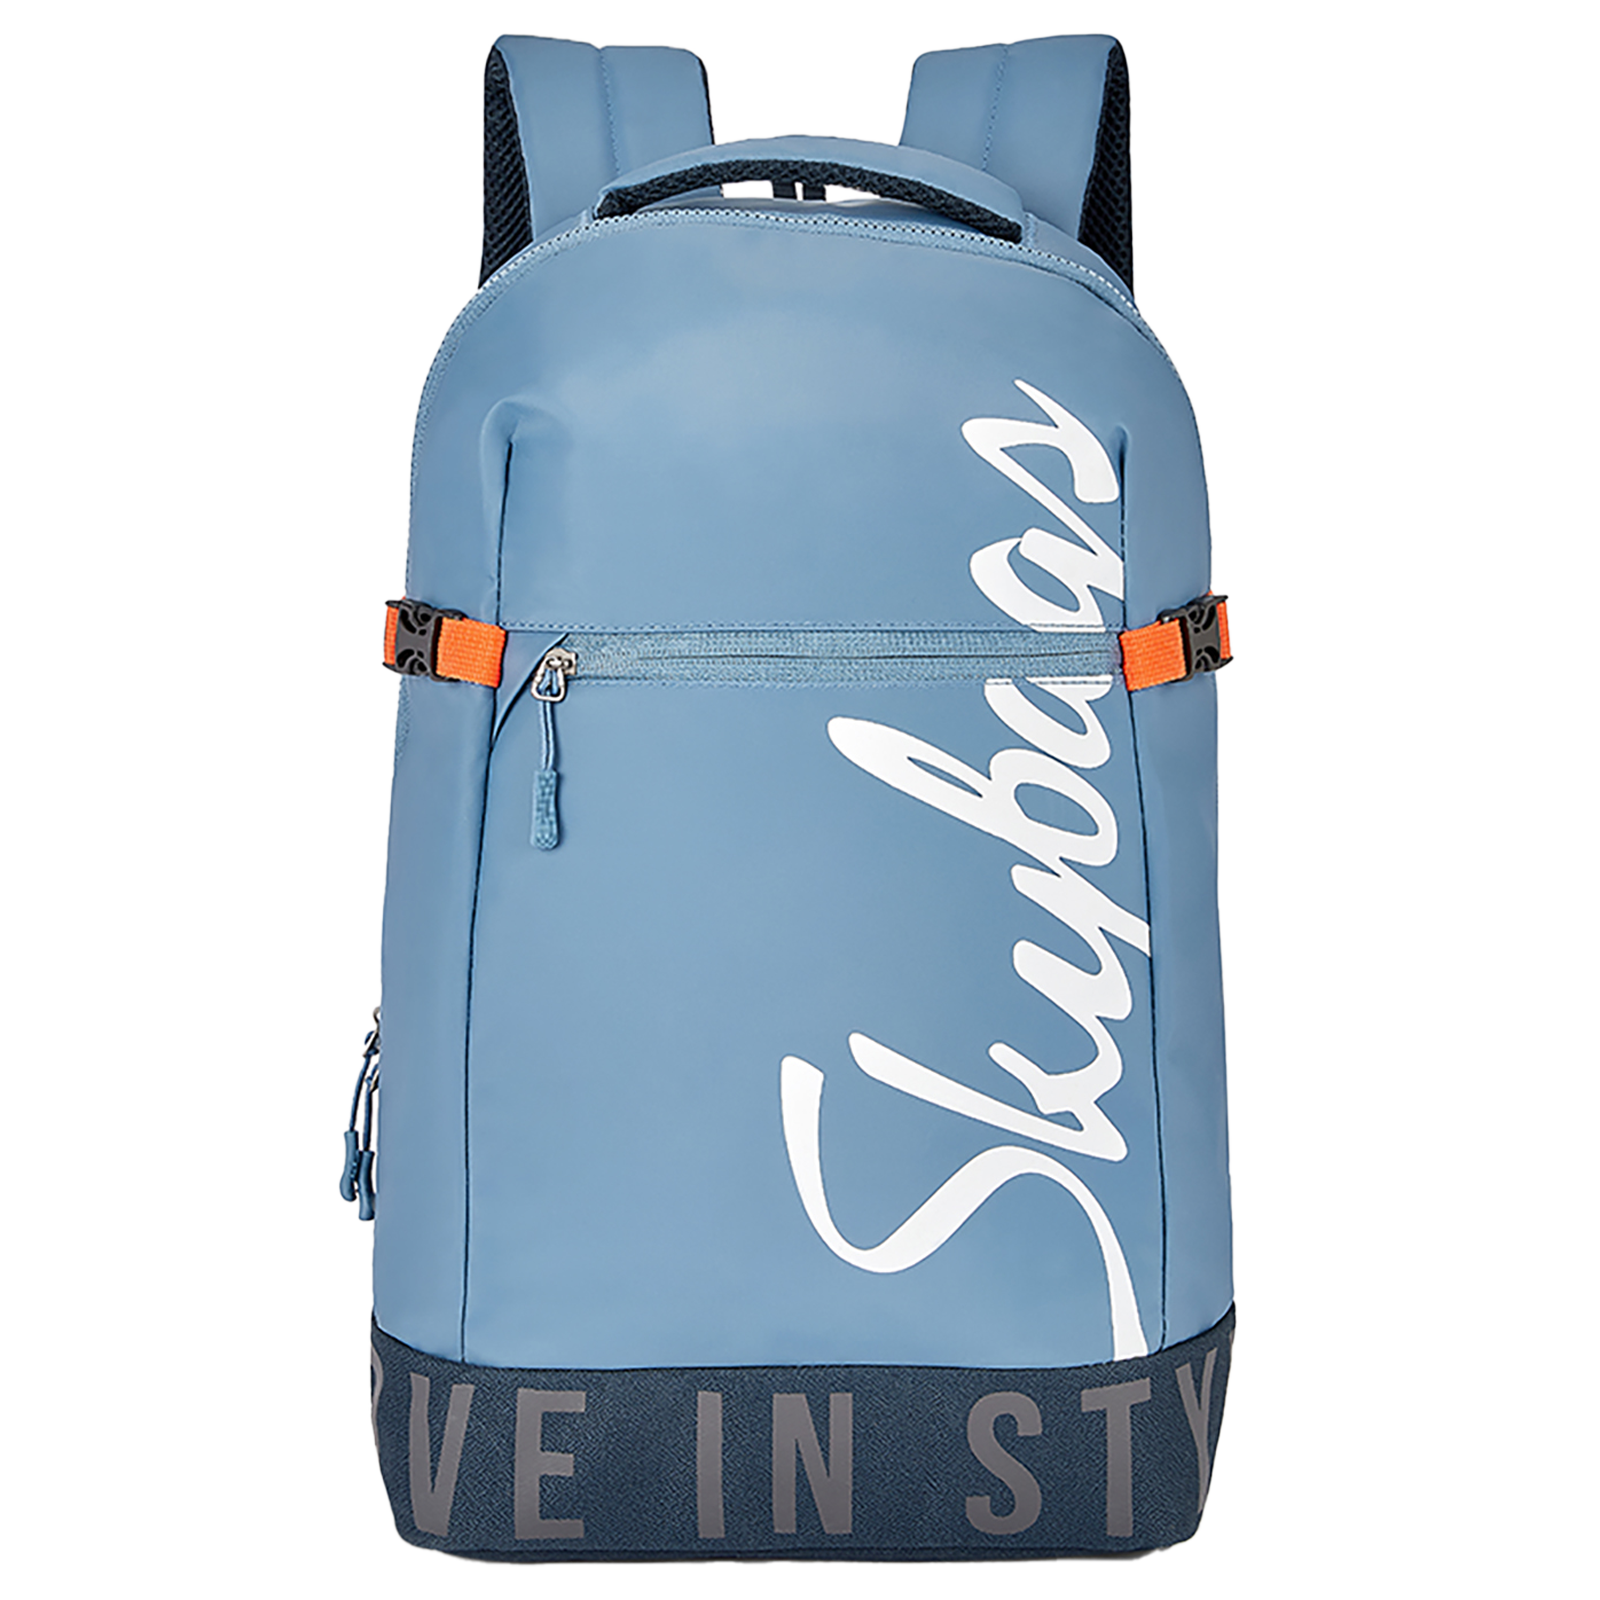 Sky Bags Boho 01 23 Litres Thermoplastic Elastomers Backpack (Rain Cover, BPBOH1RBLU, Blue)_1